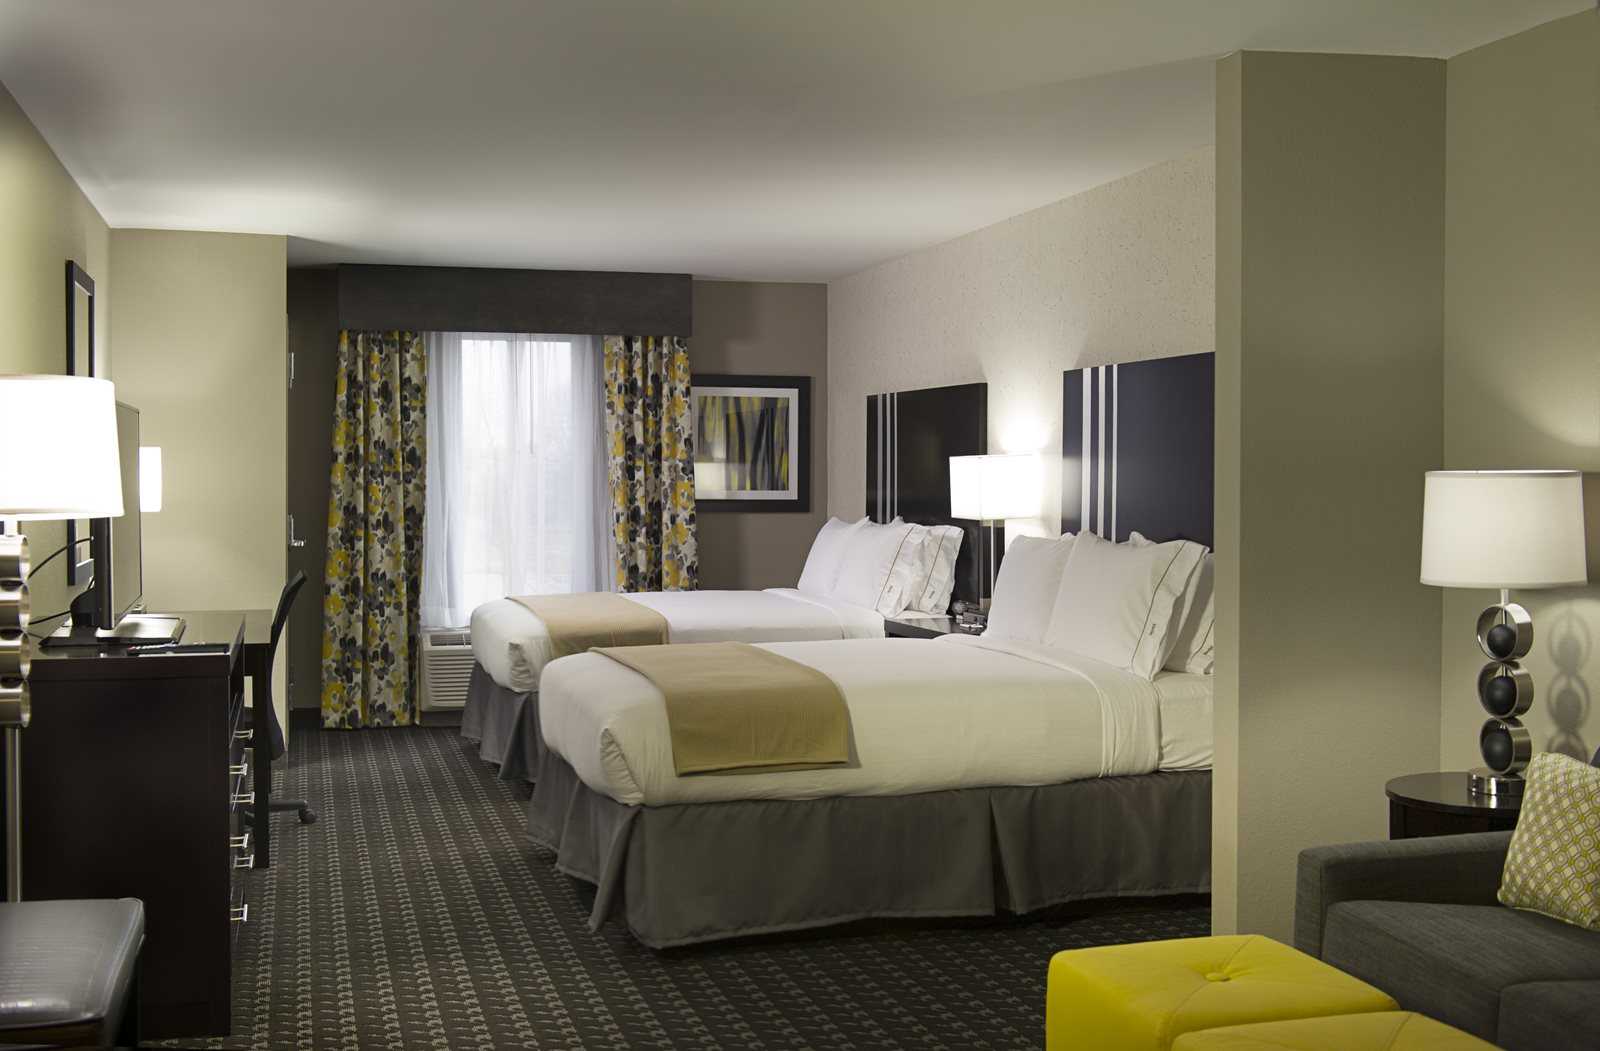 5HolidayInn-Dbl-Queen-suite-3392.jpg